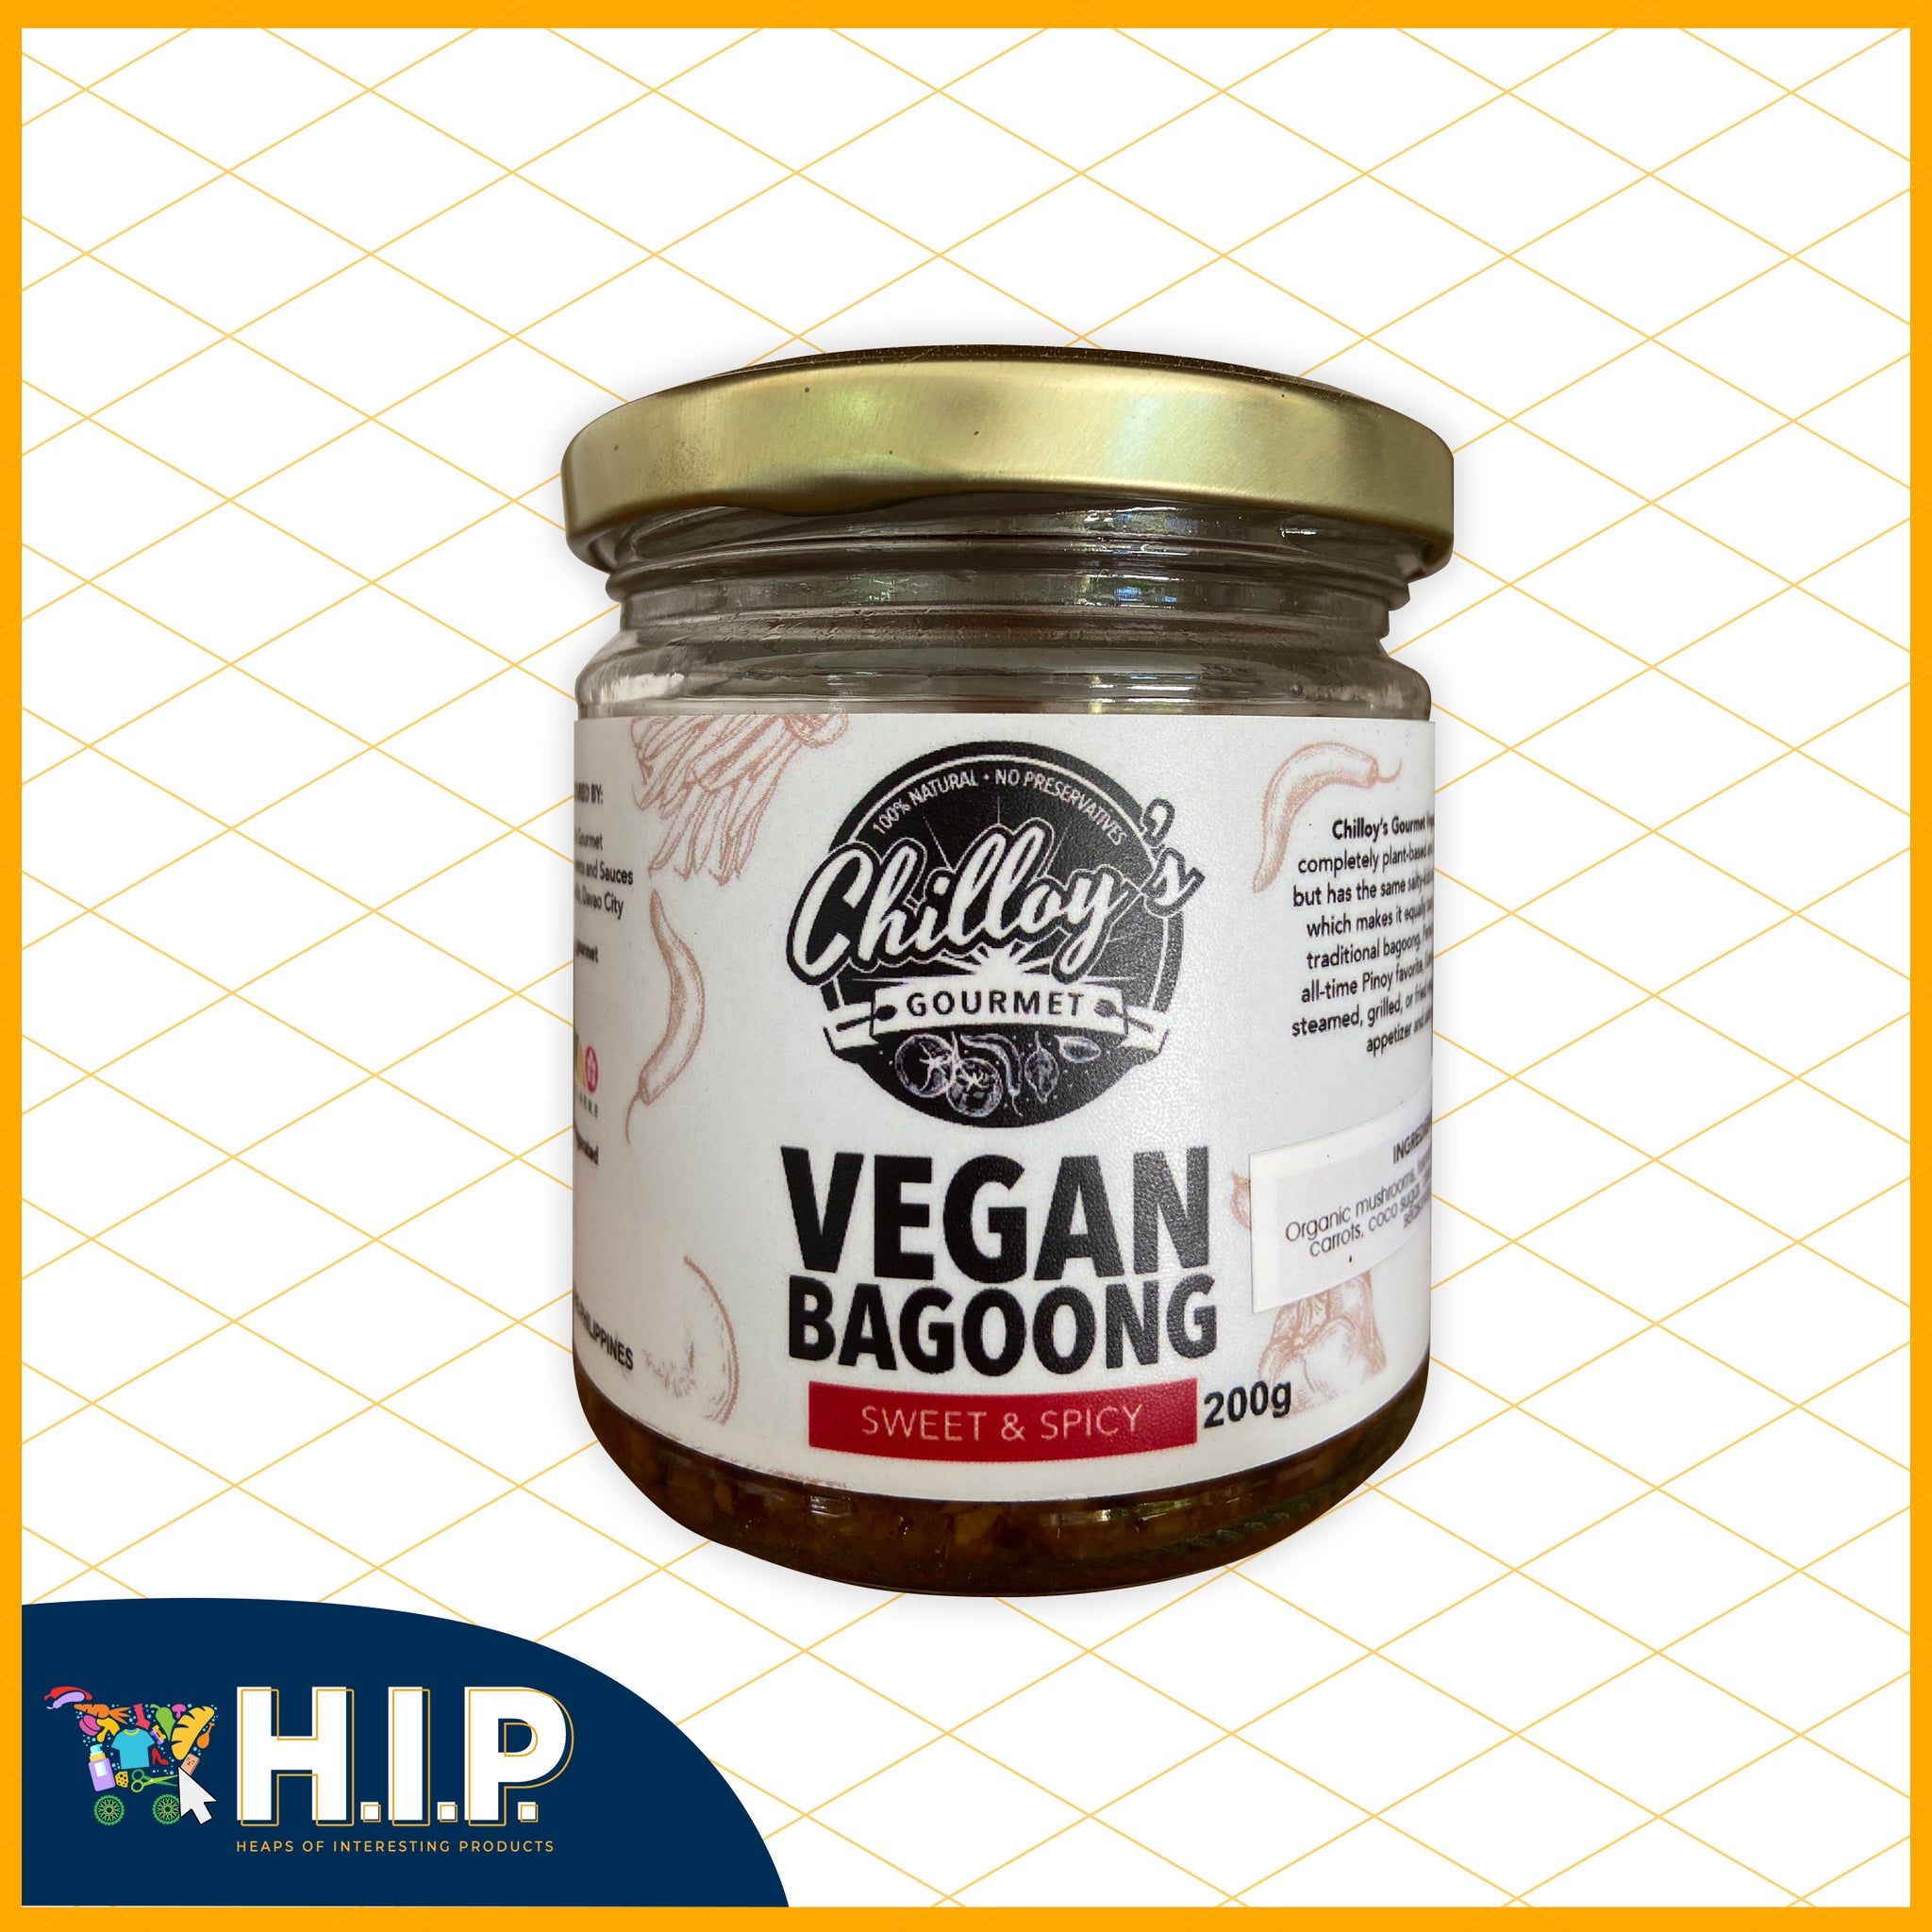 Chilloy's Vegan Bagoong